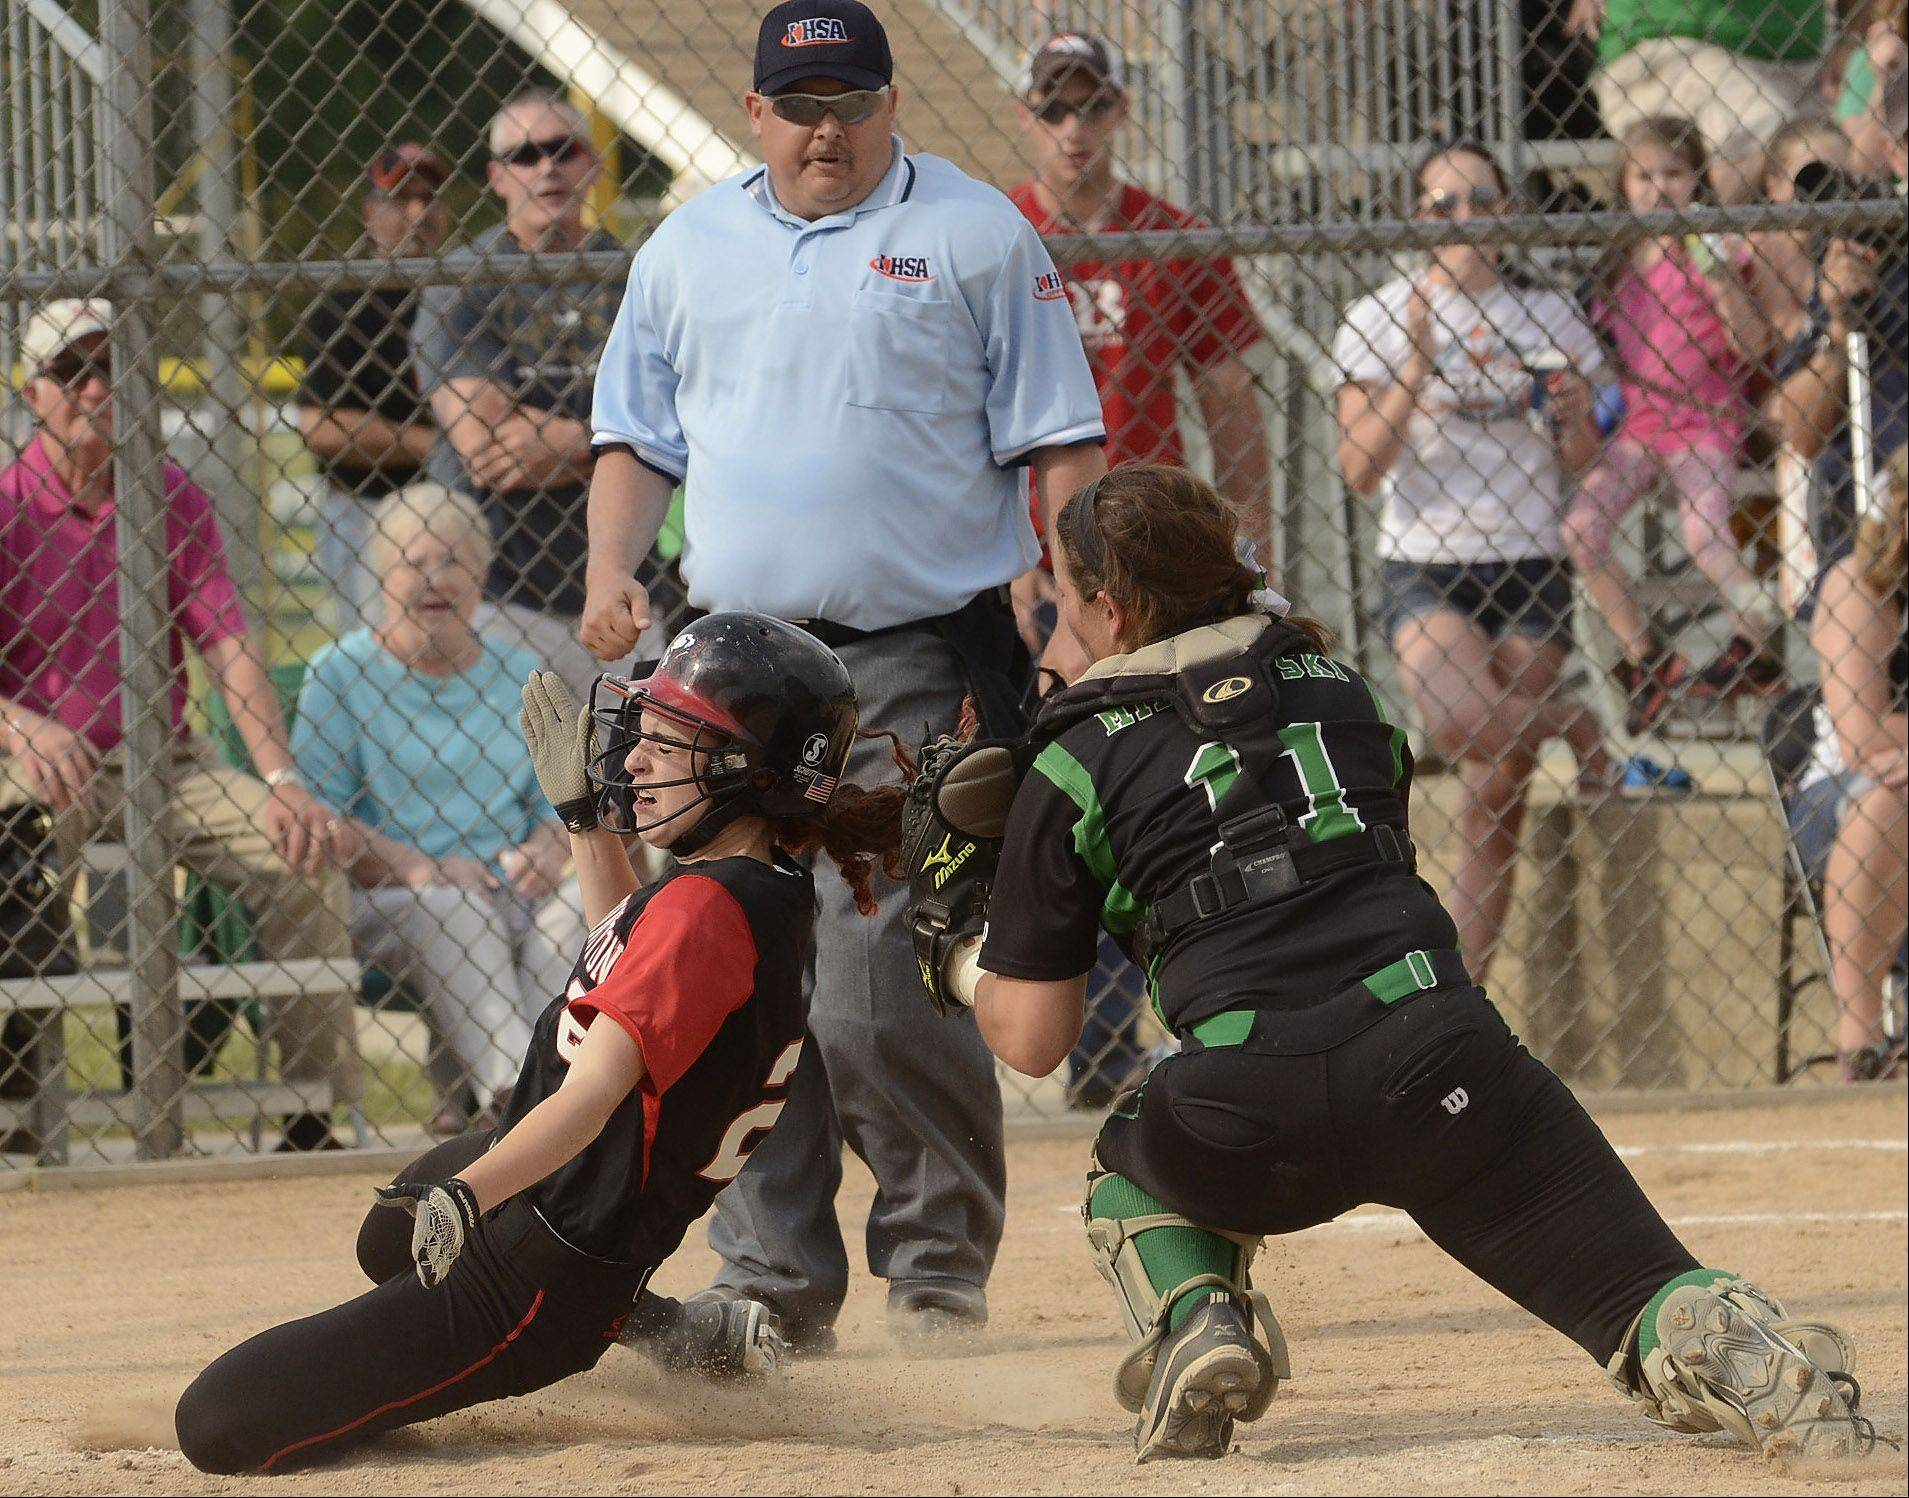 Barrington's Jenna Privatsky is tagged out at the plate by York catcher Sarah Milkowski in the top half of the 7th inning during Class 4A softball third place game between Barrington and York.